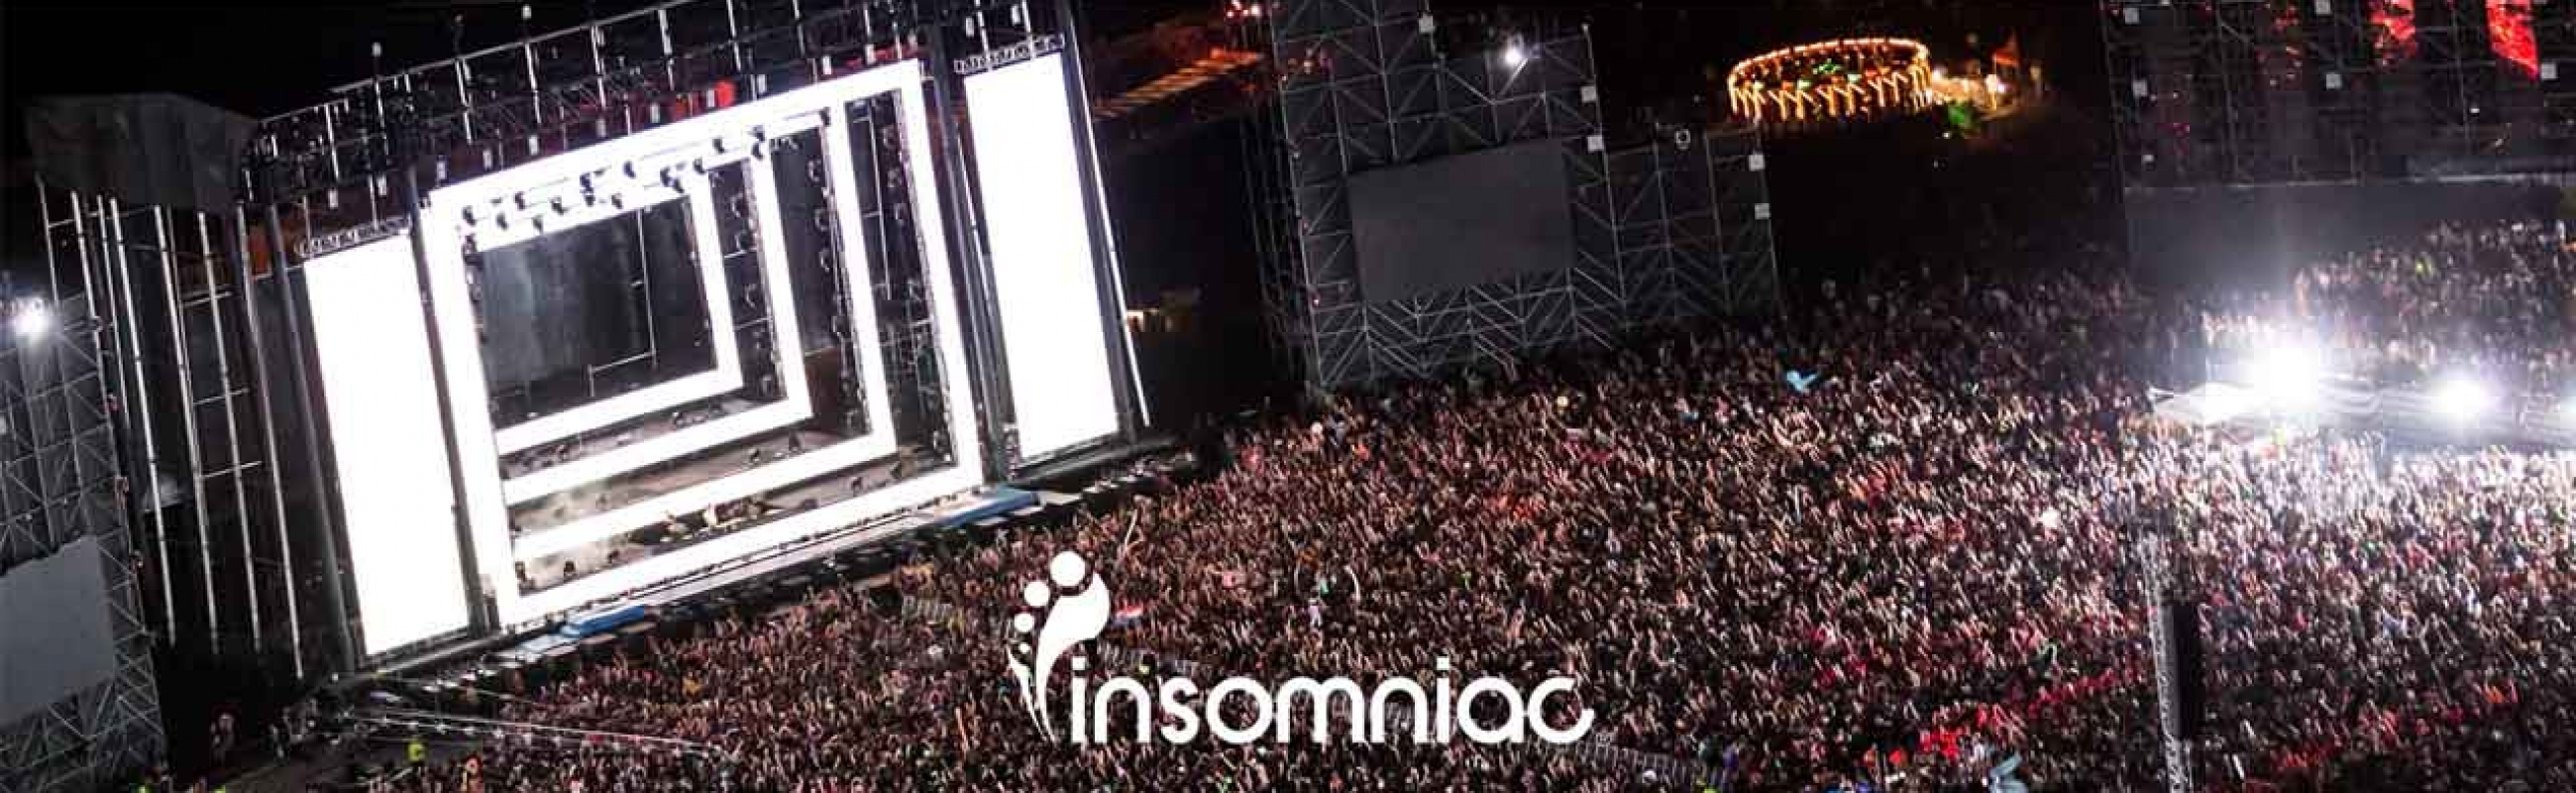 insomniac-events